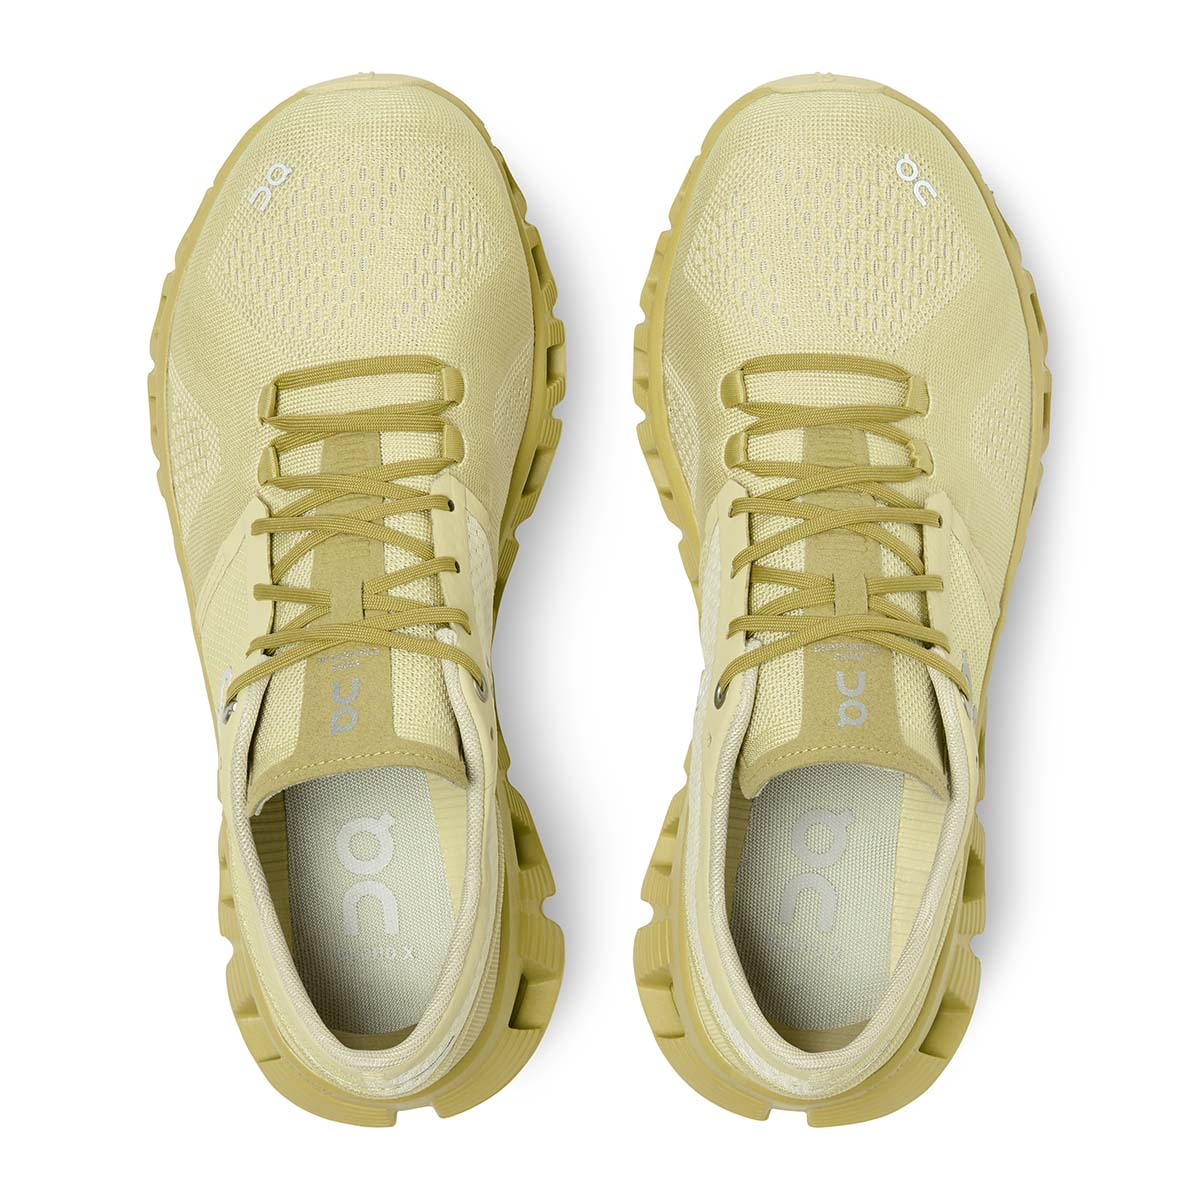 Women's On Cloud X 2.0 Running Shoe - Color: Glade/Citron - Size: 5 - Width: Regular, Glade/Citron, large, image 4